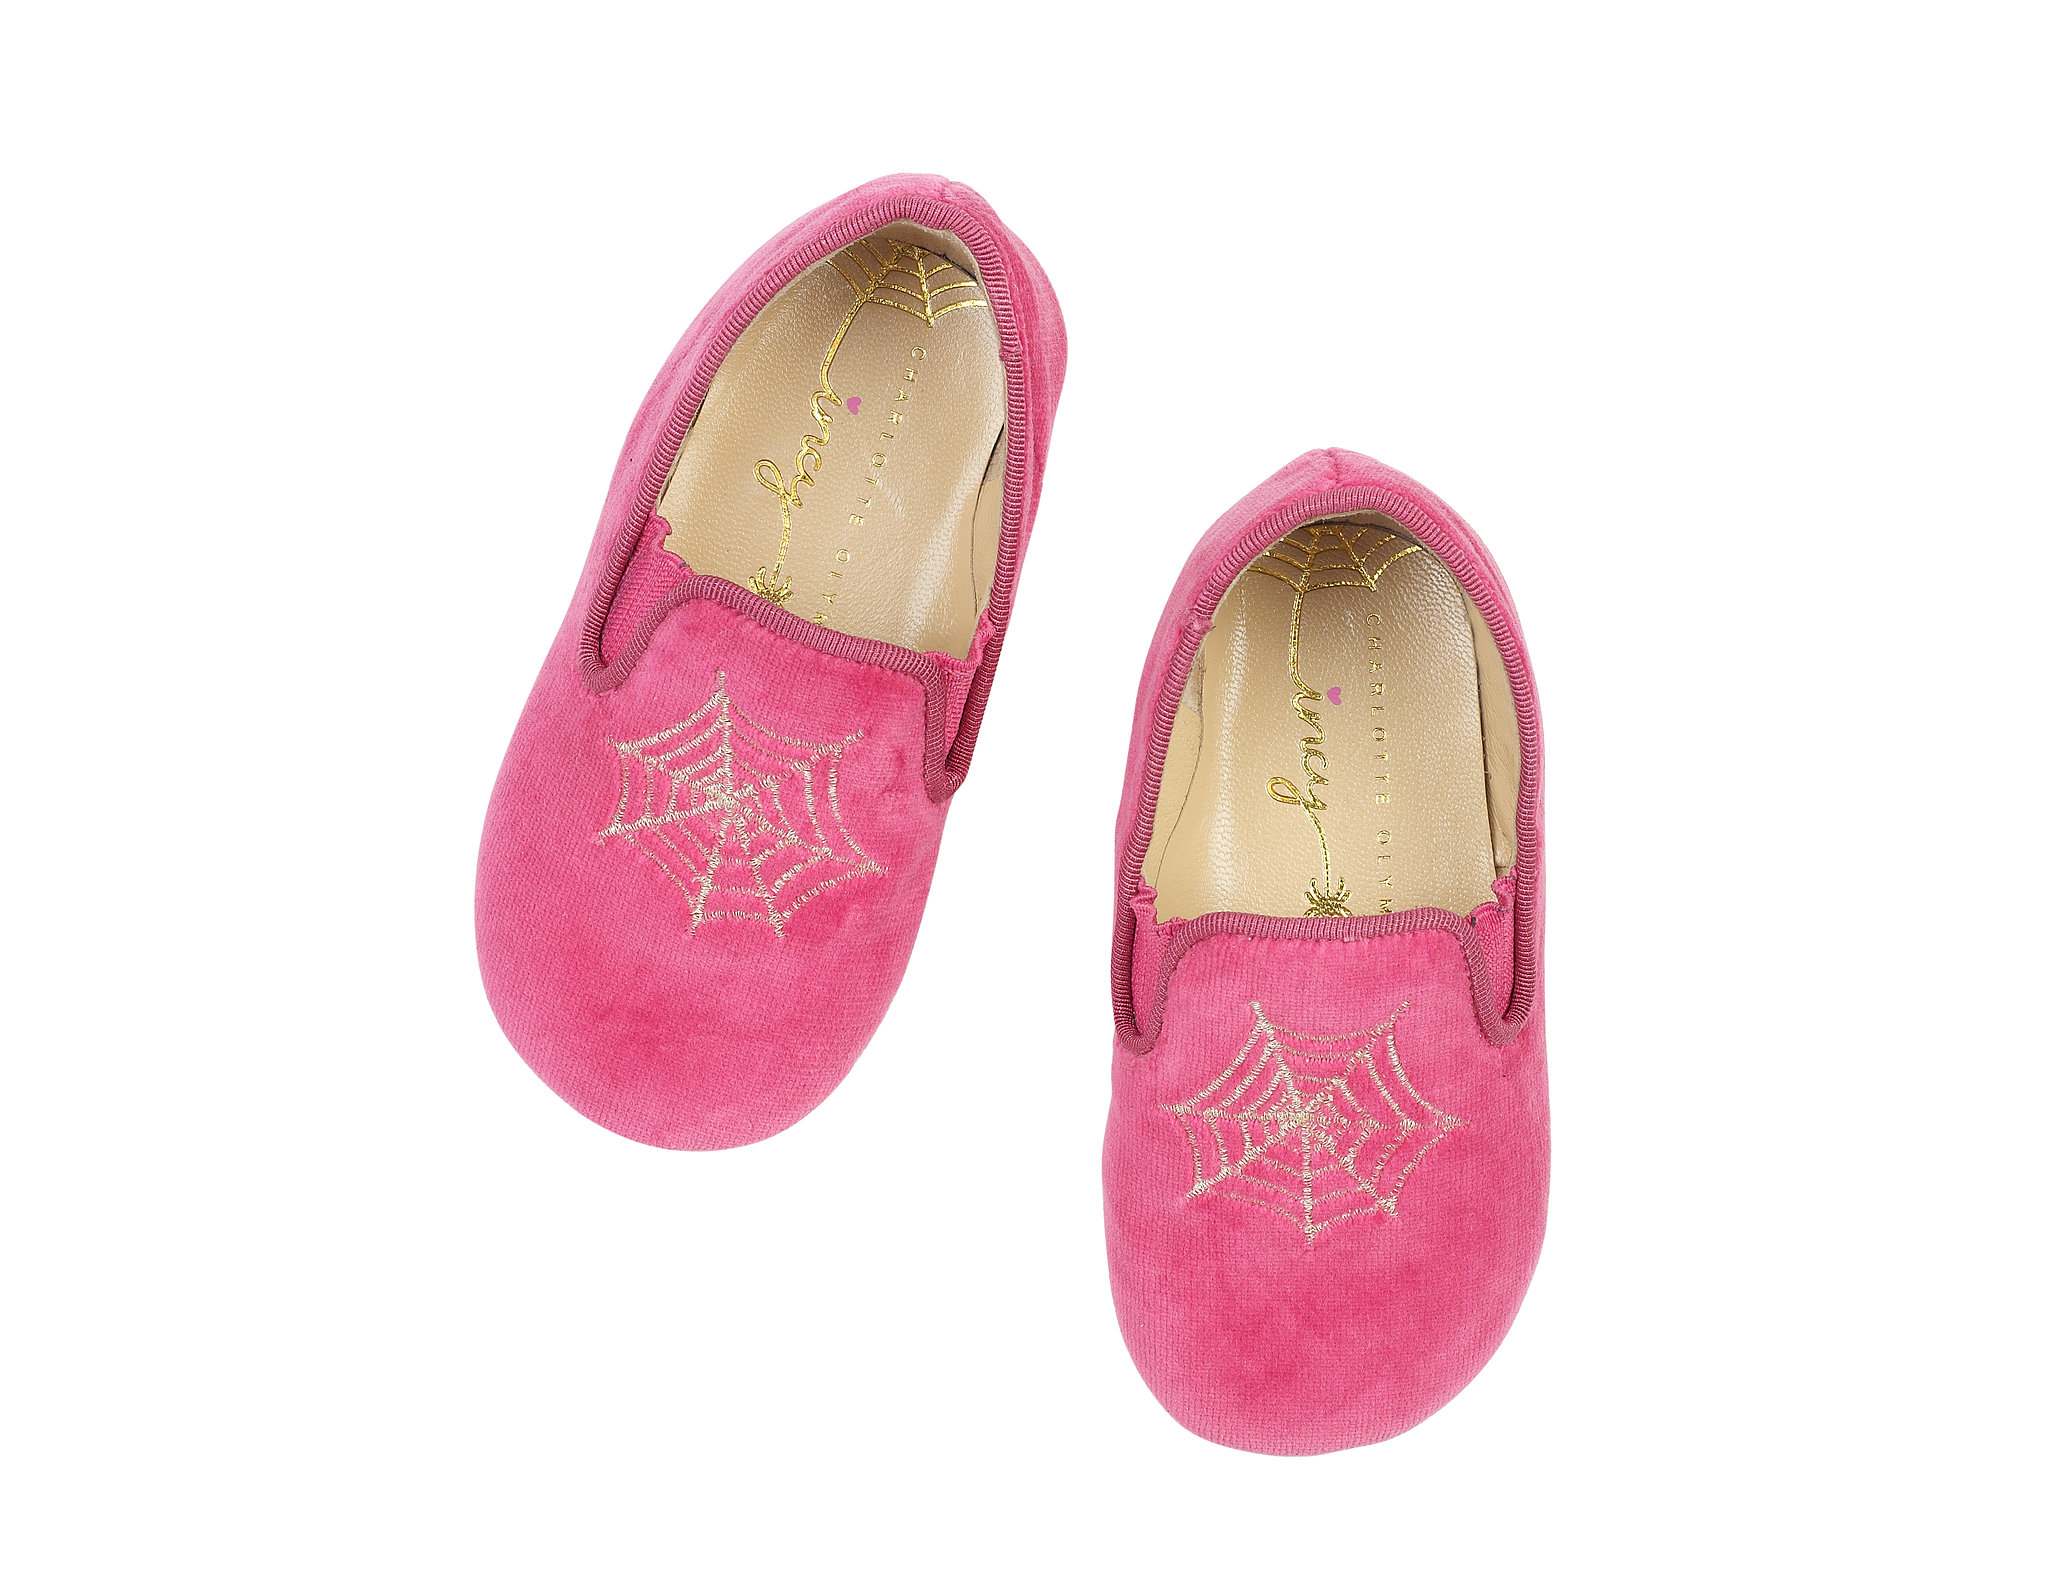 Charlotte Olympia Wincy slip-on shoes ($125) in pink ...